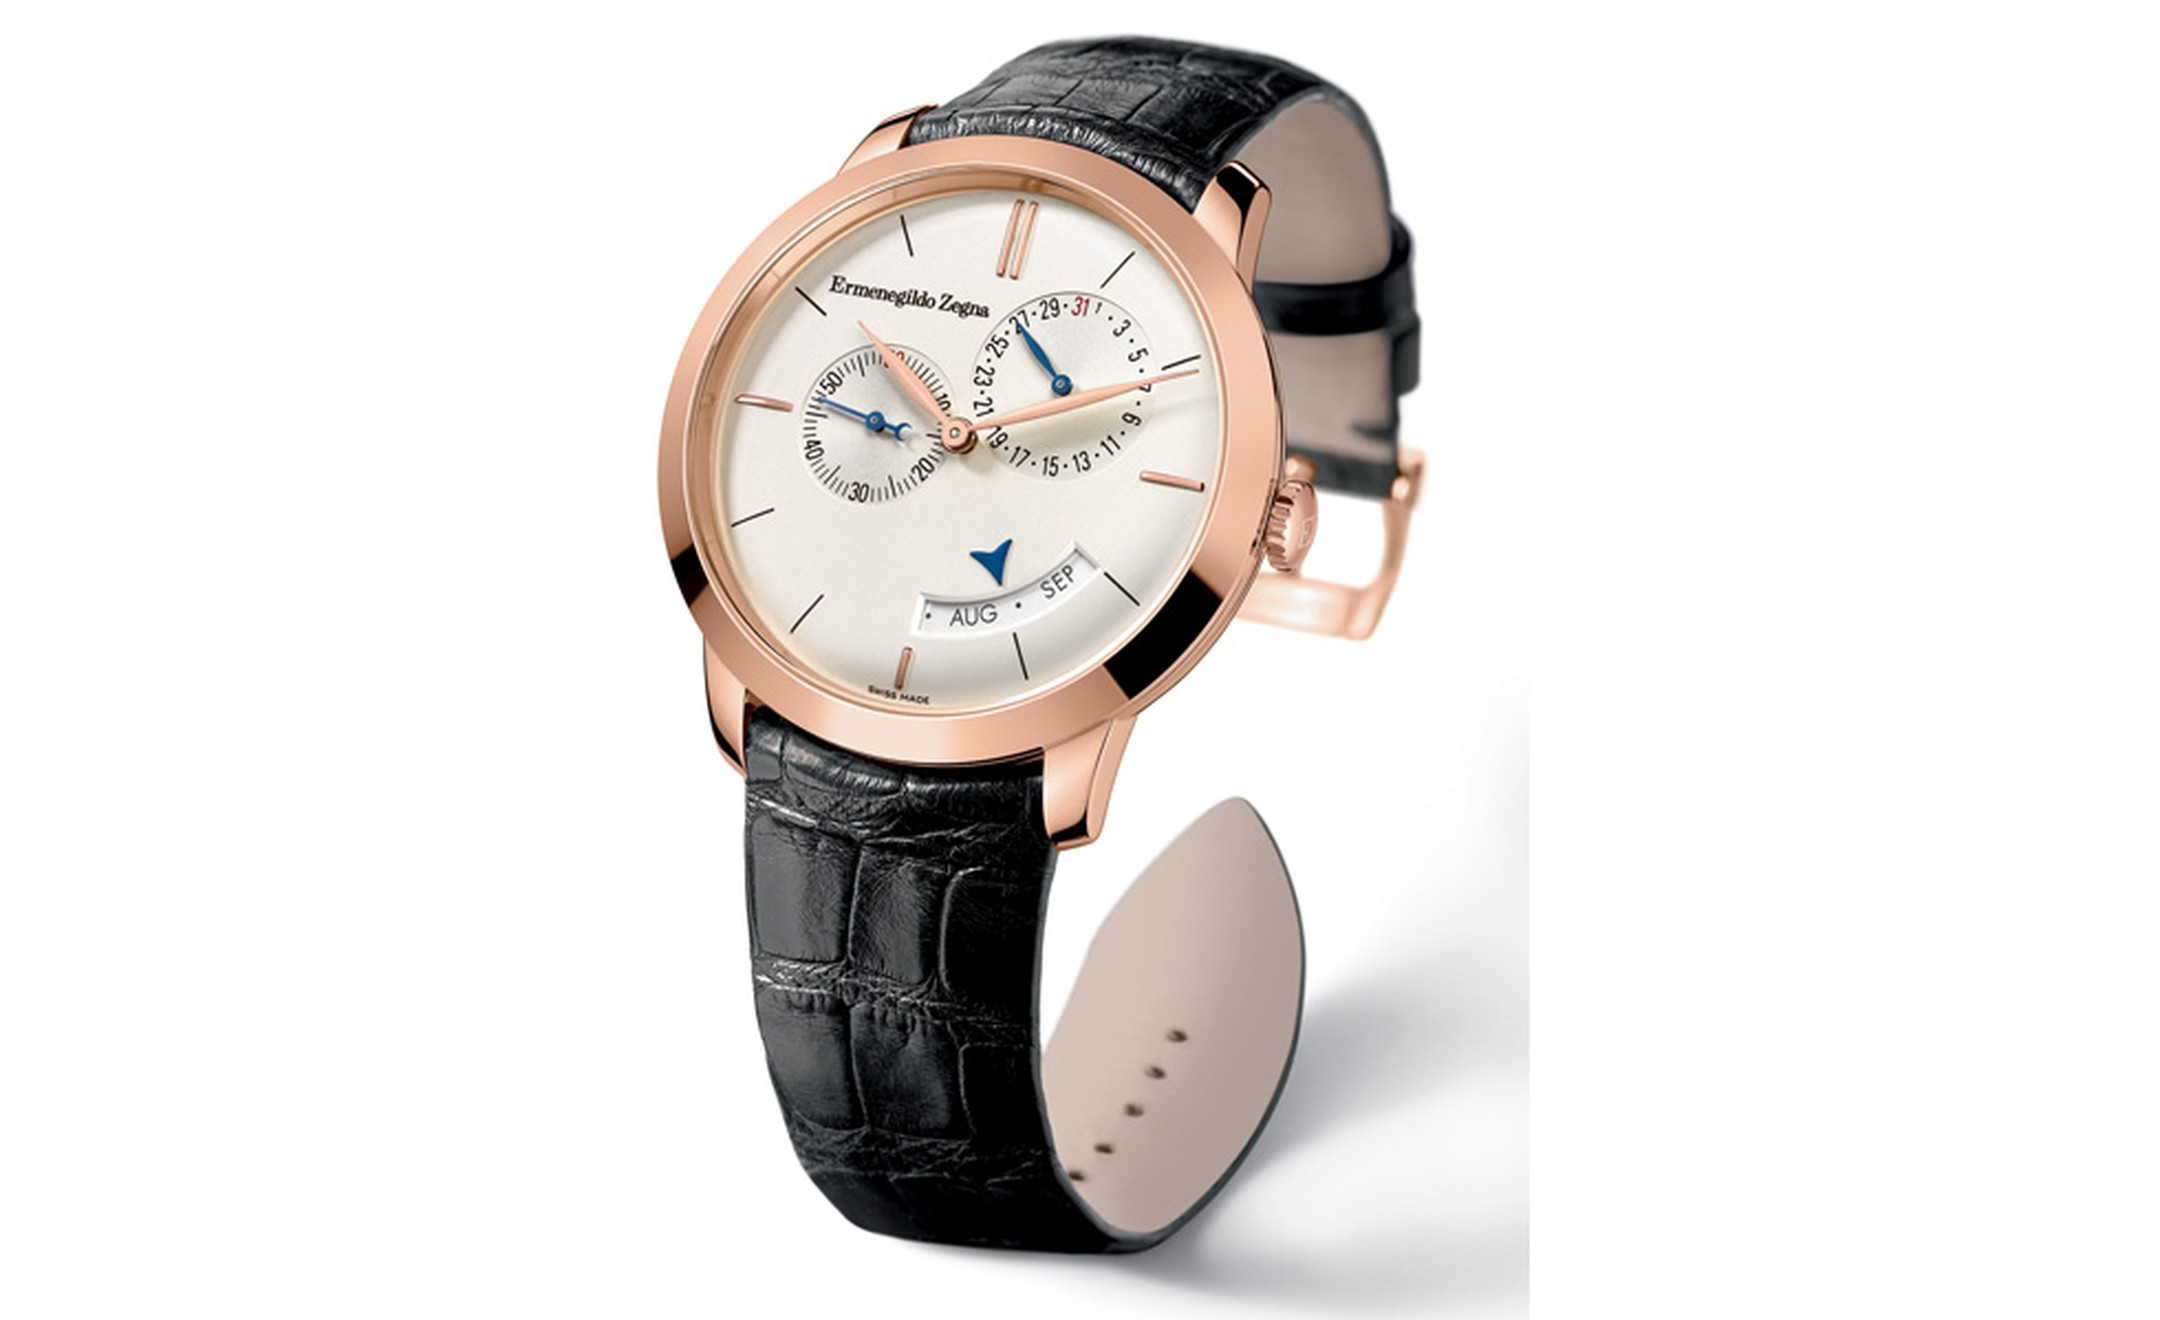 Girard Perregaux for Ermenegildo Zegna Centennial annual calendar in pink gold and limited to 100 pieces